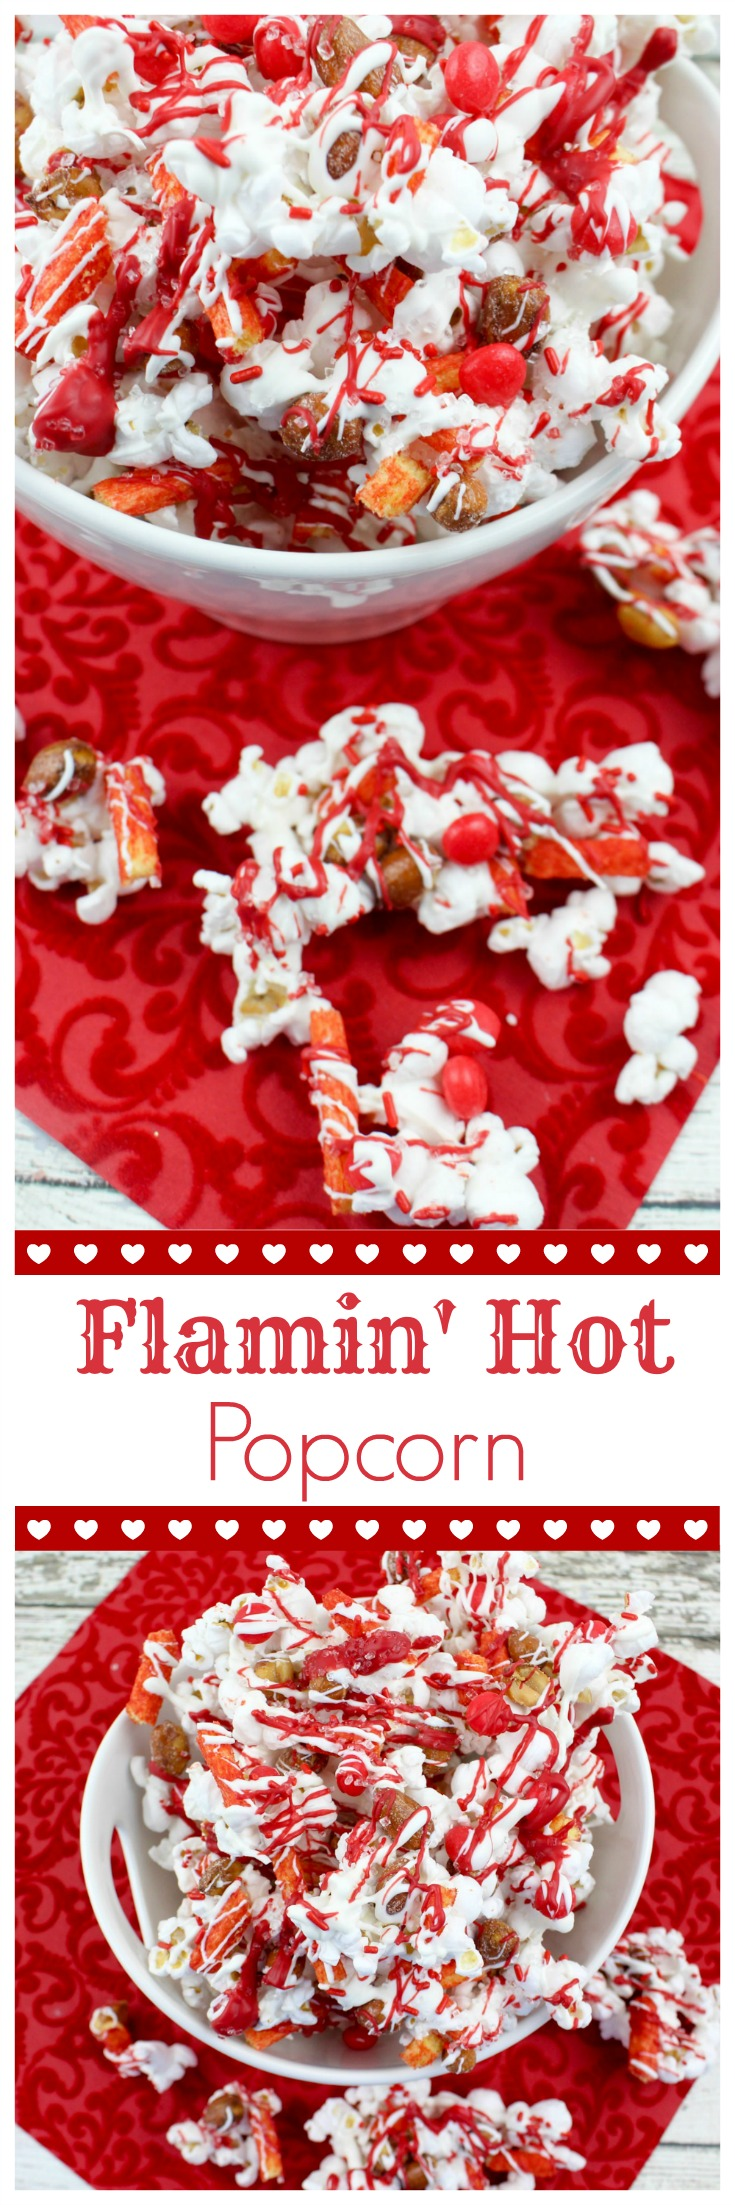 Add a little spice to the sweetest day of the year with this deliciously sweet-n-spicy Flamin' Hot Valentine's Day Popcorn recipe.